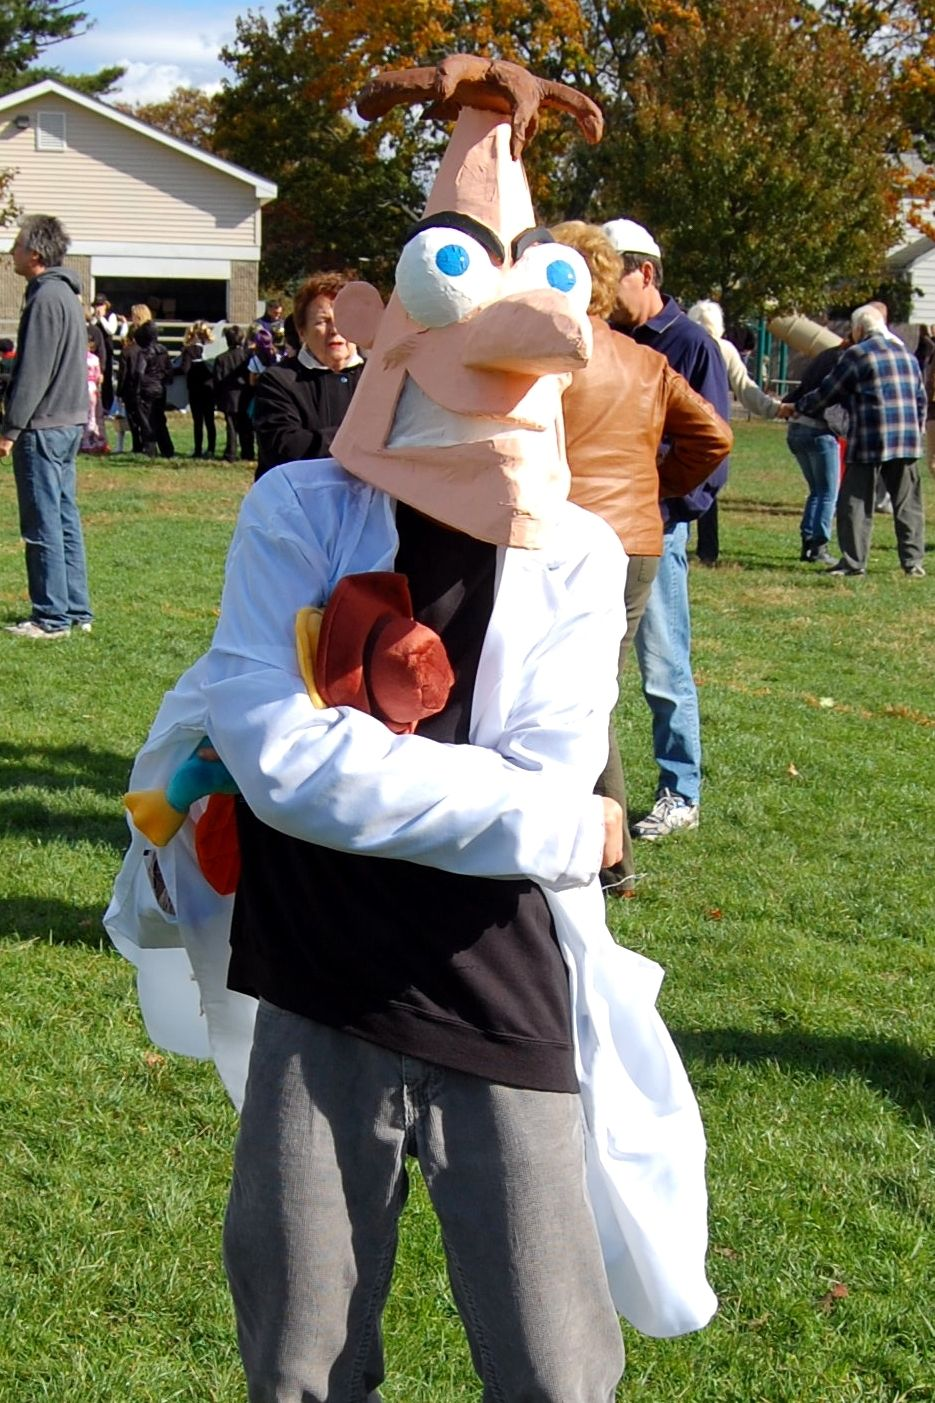 for all you phineas & ferb watchers! my husband made the dr